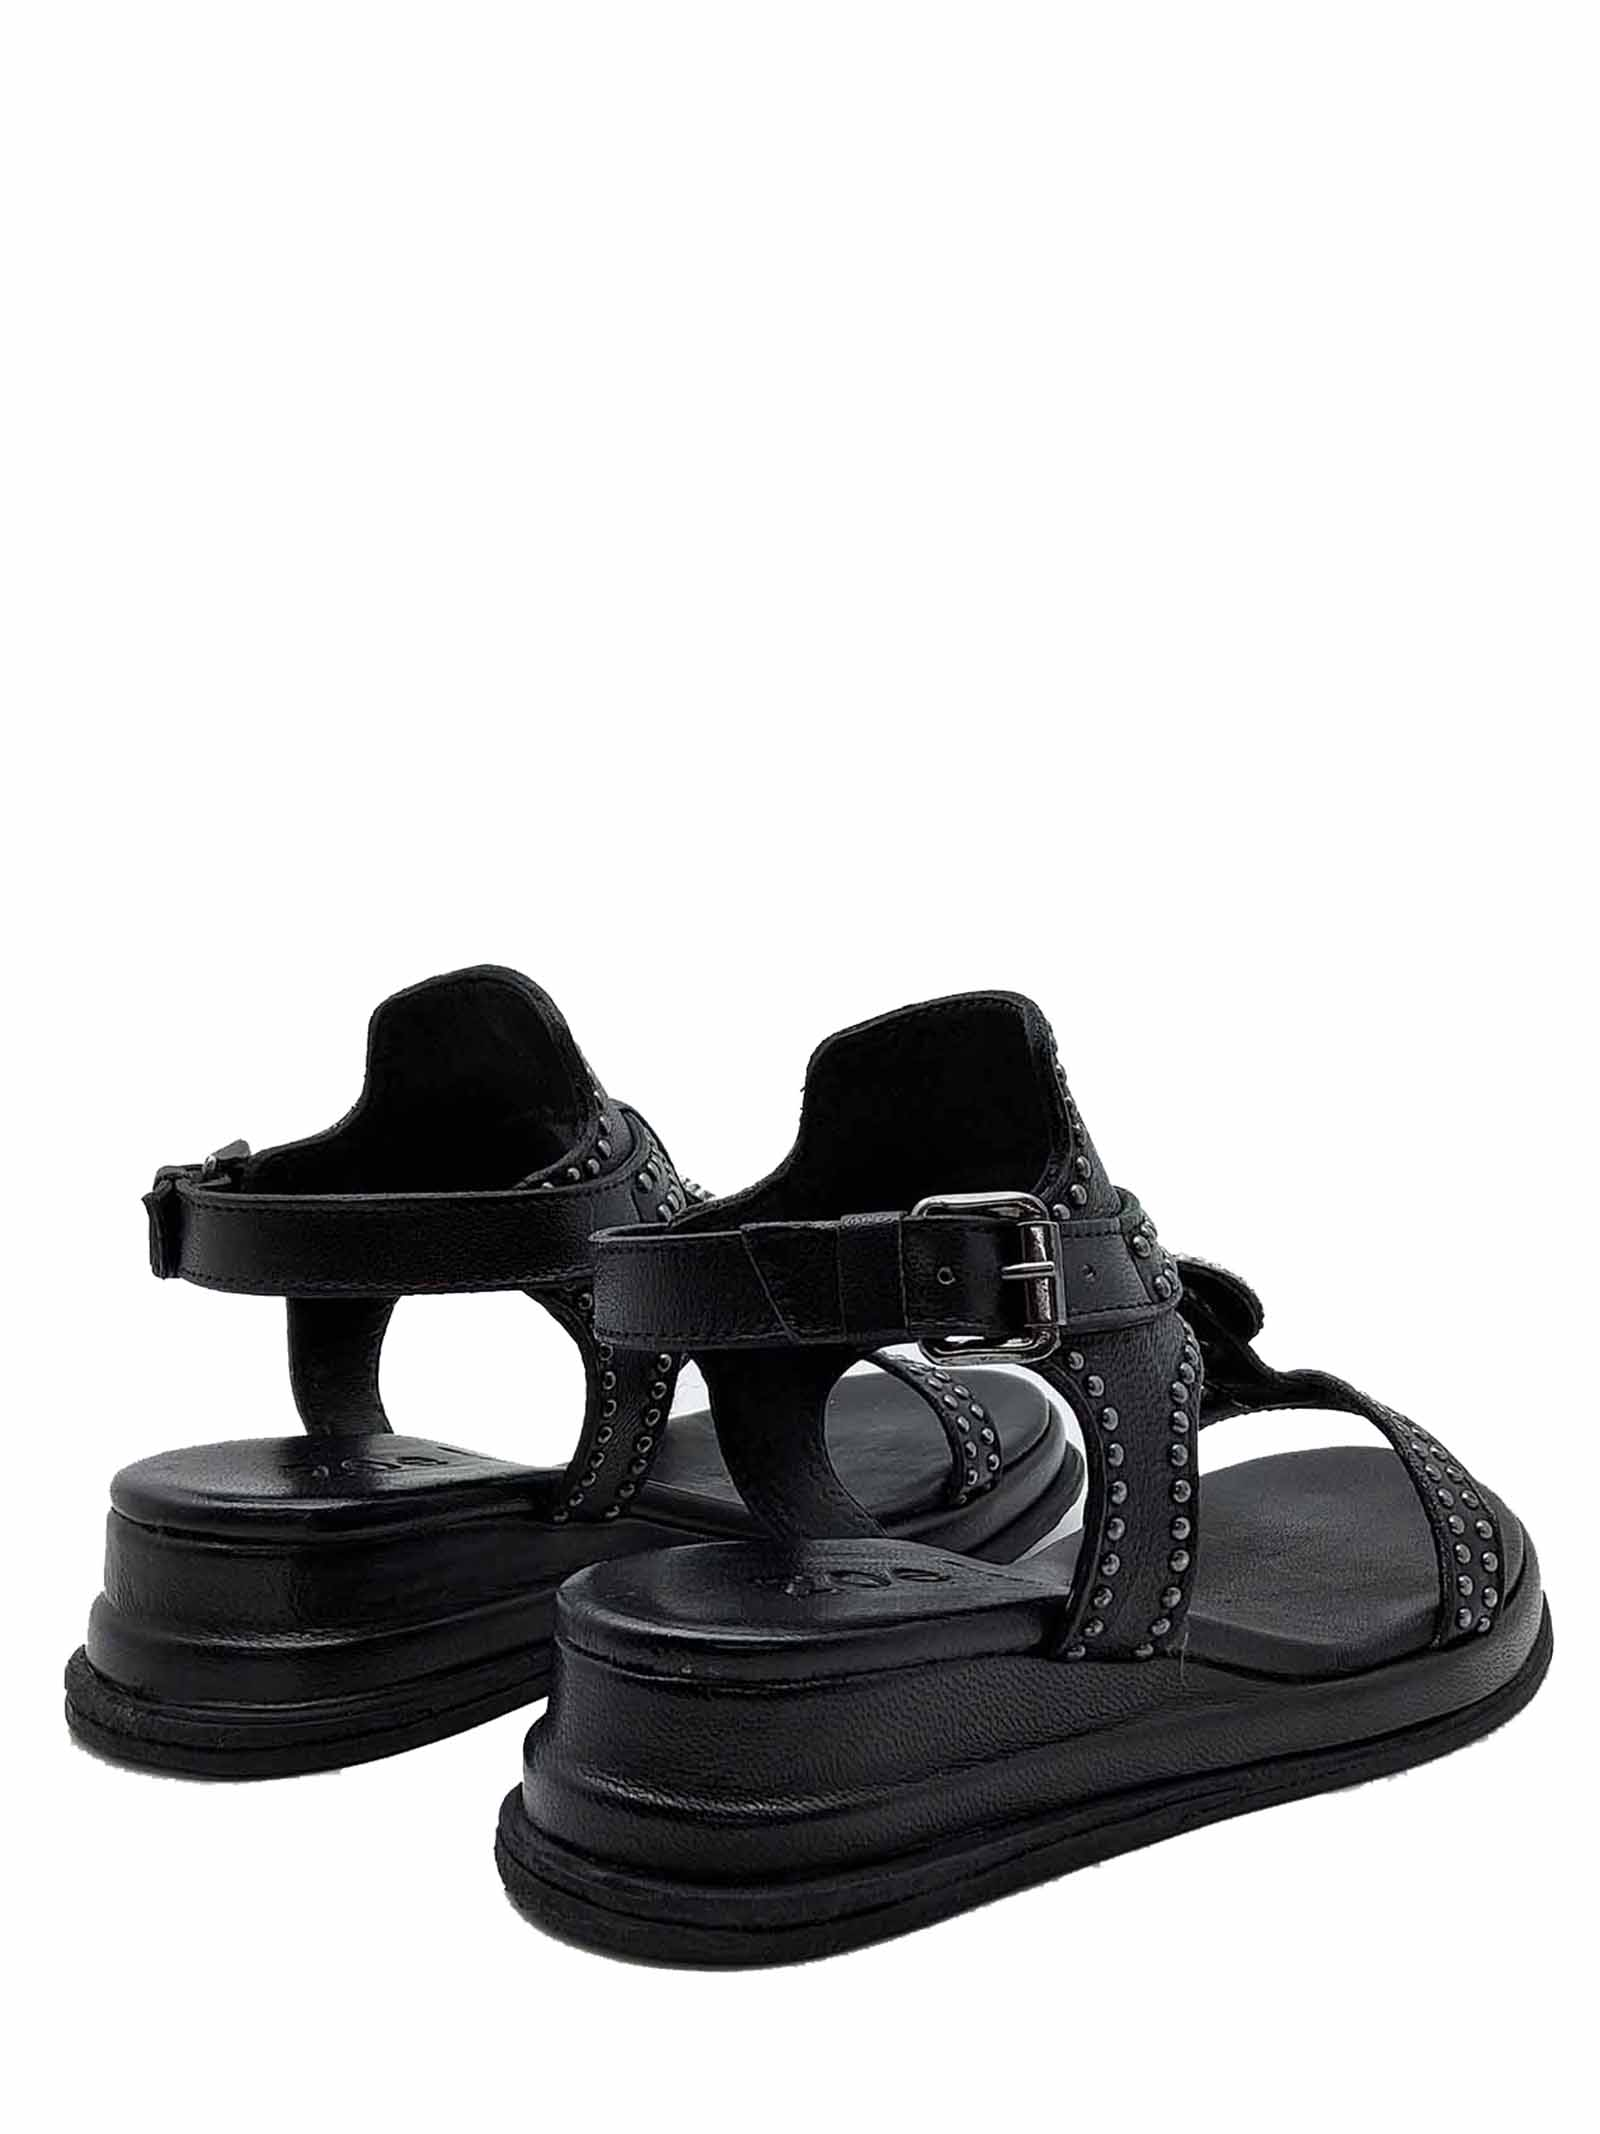 Women's Shoes Sandals in Black Leather with Studs and Ankle Strap Ultra Light Wedge Zoe | Wedge Sandals | CHEYENNE02001